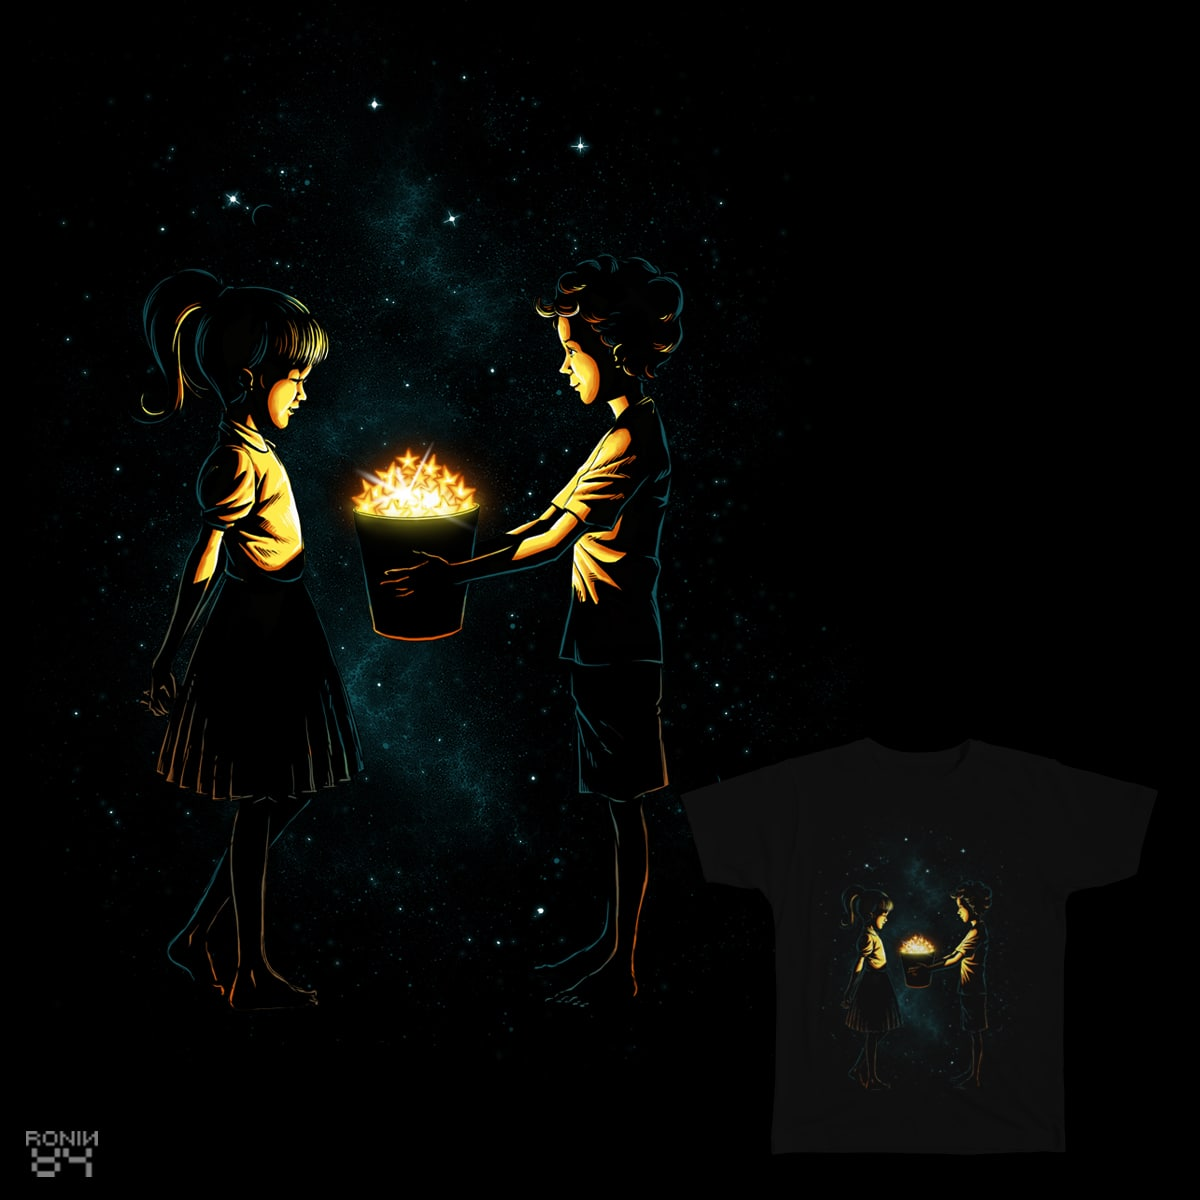 i wanna be your hope by ronin84 on Threadless